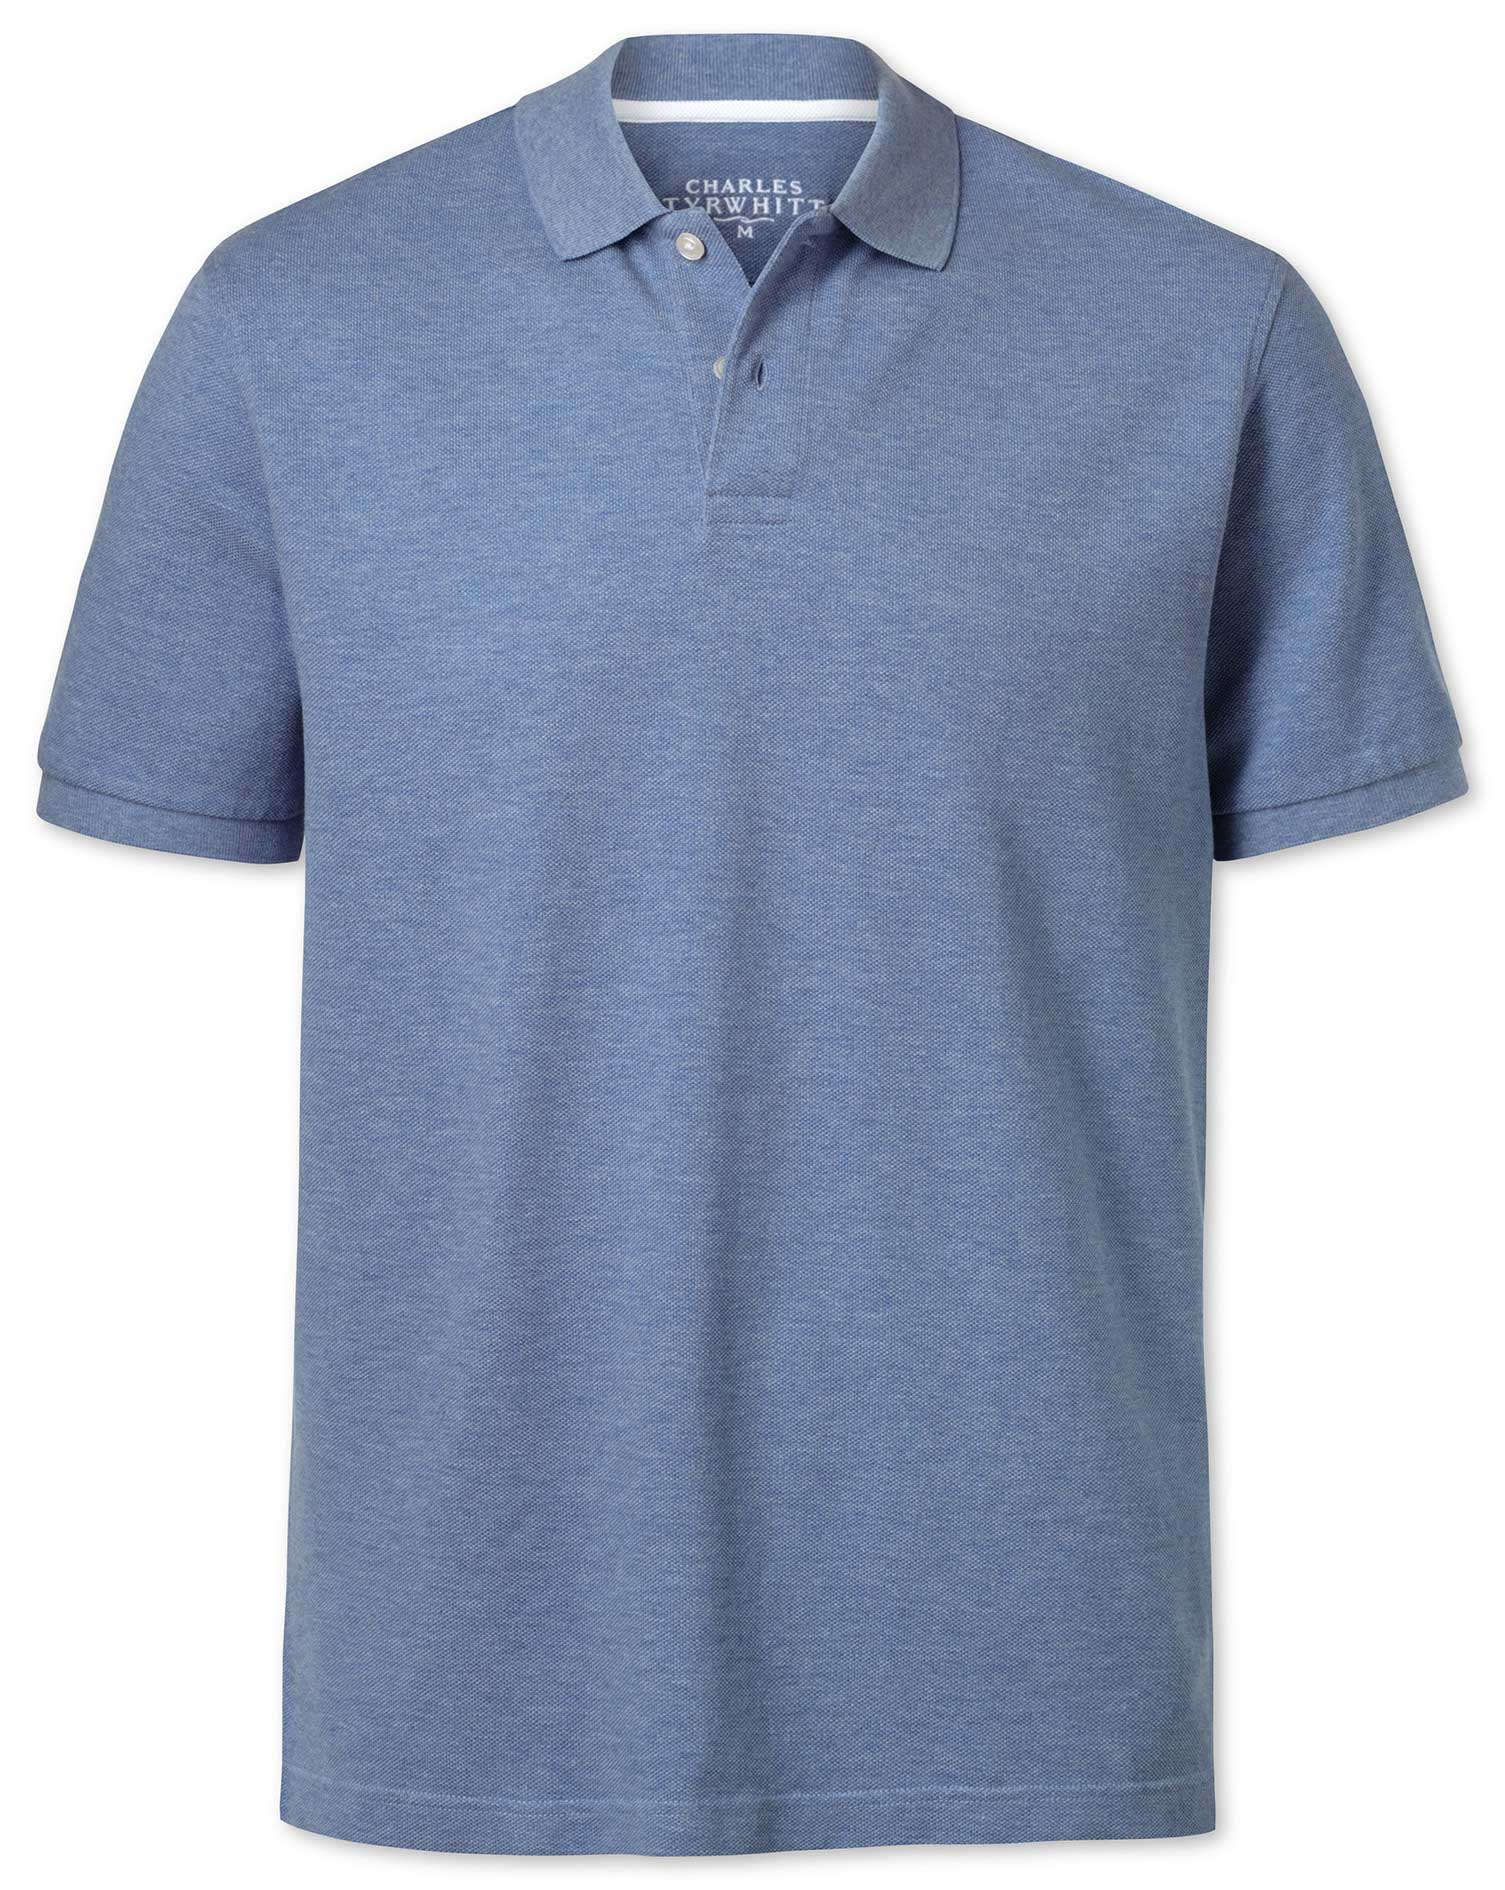 Sky Blue Melange Pique Cotton Polo Size Large by Charles Tyrwhitt